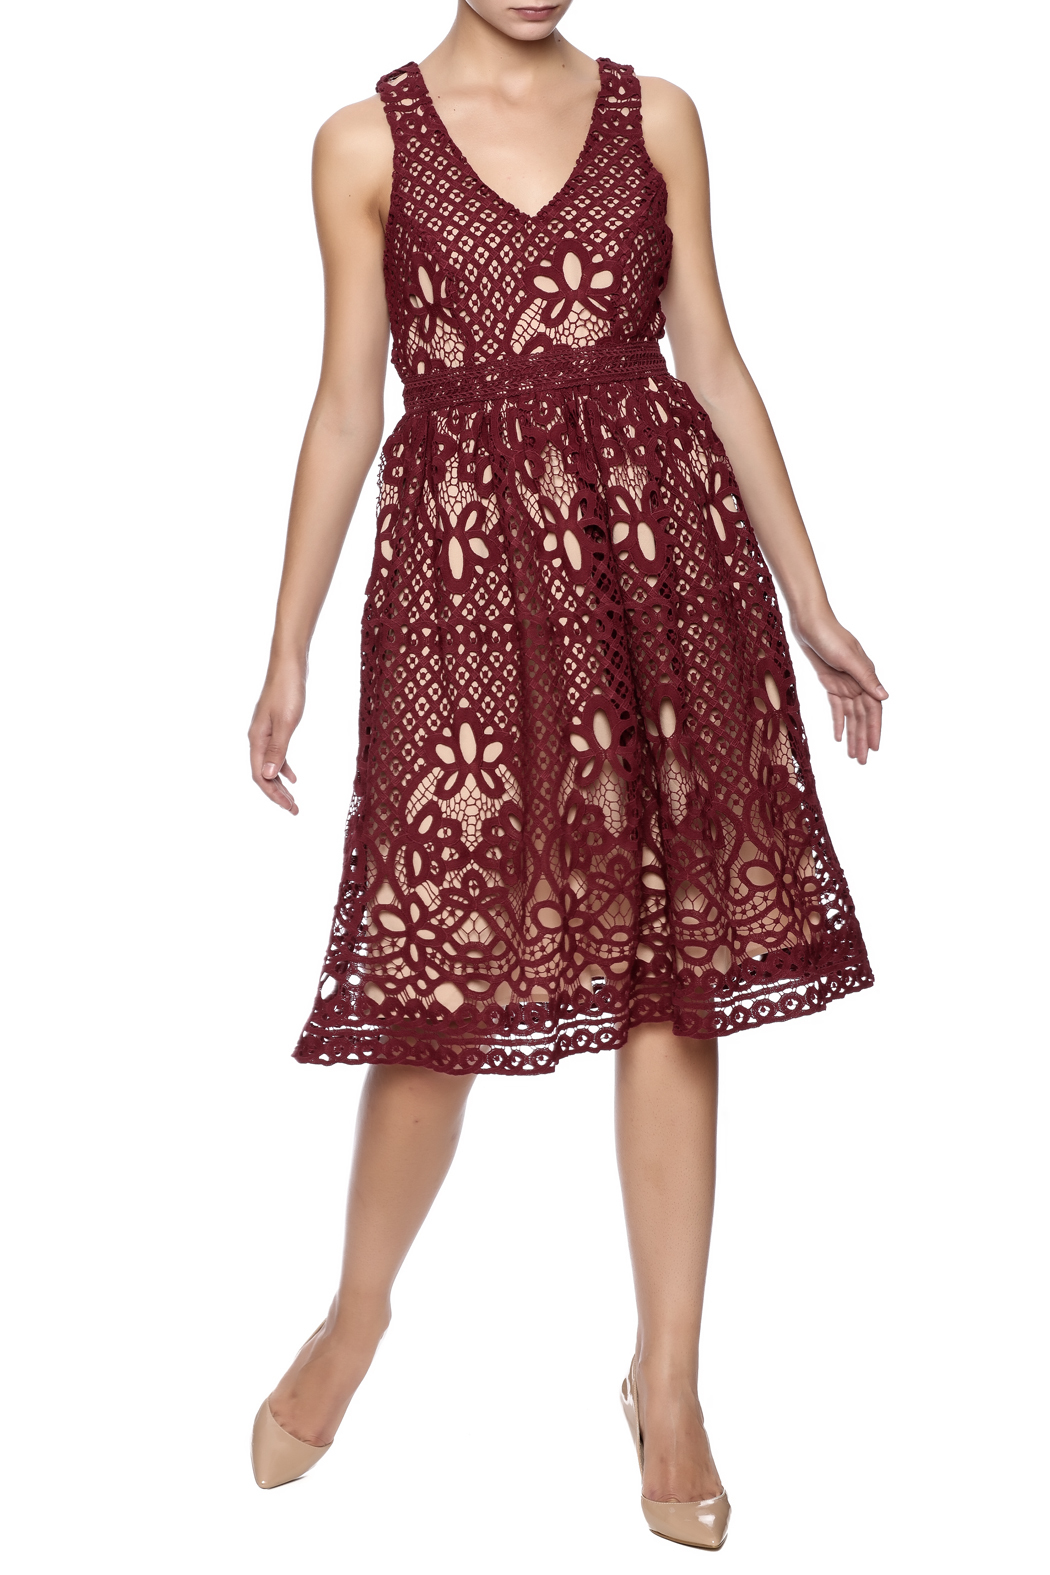 Champagne Amp Strawberry Burgundy Lace Dress From Pittsburgh